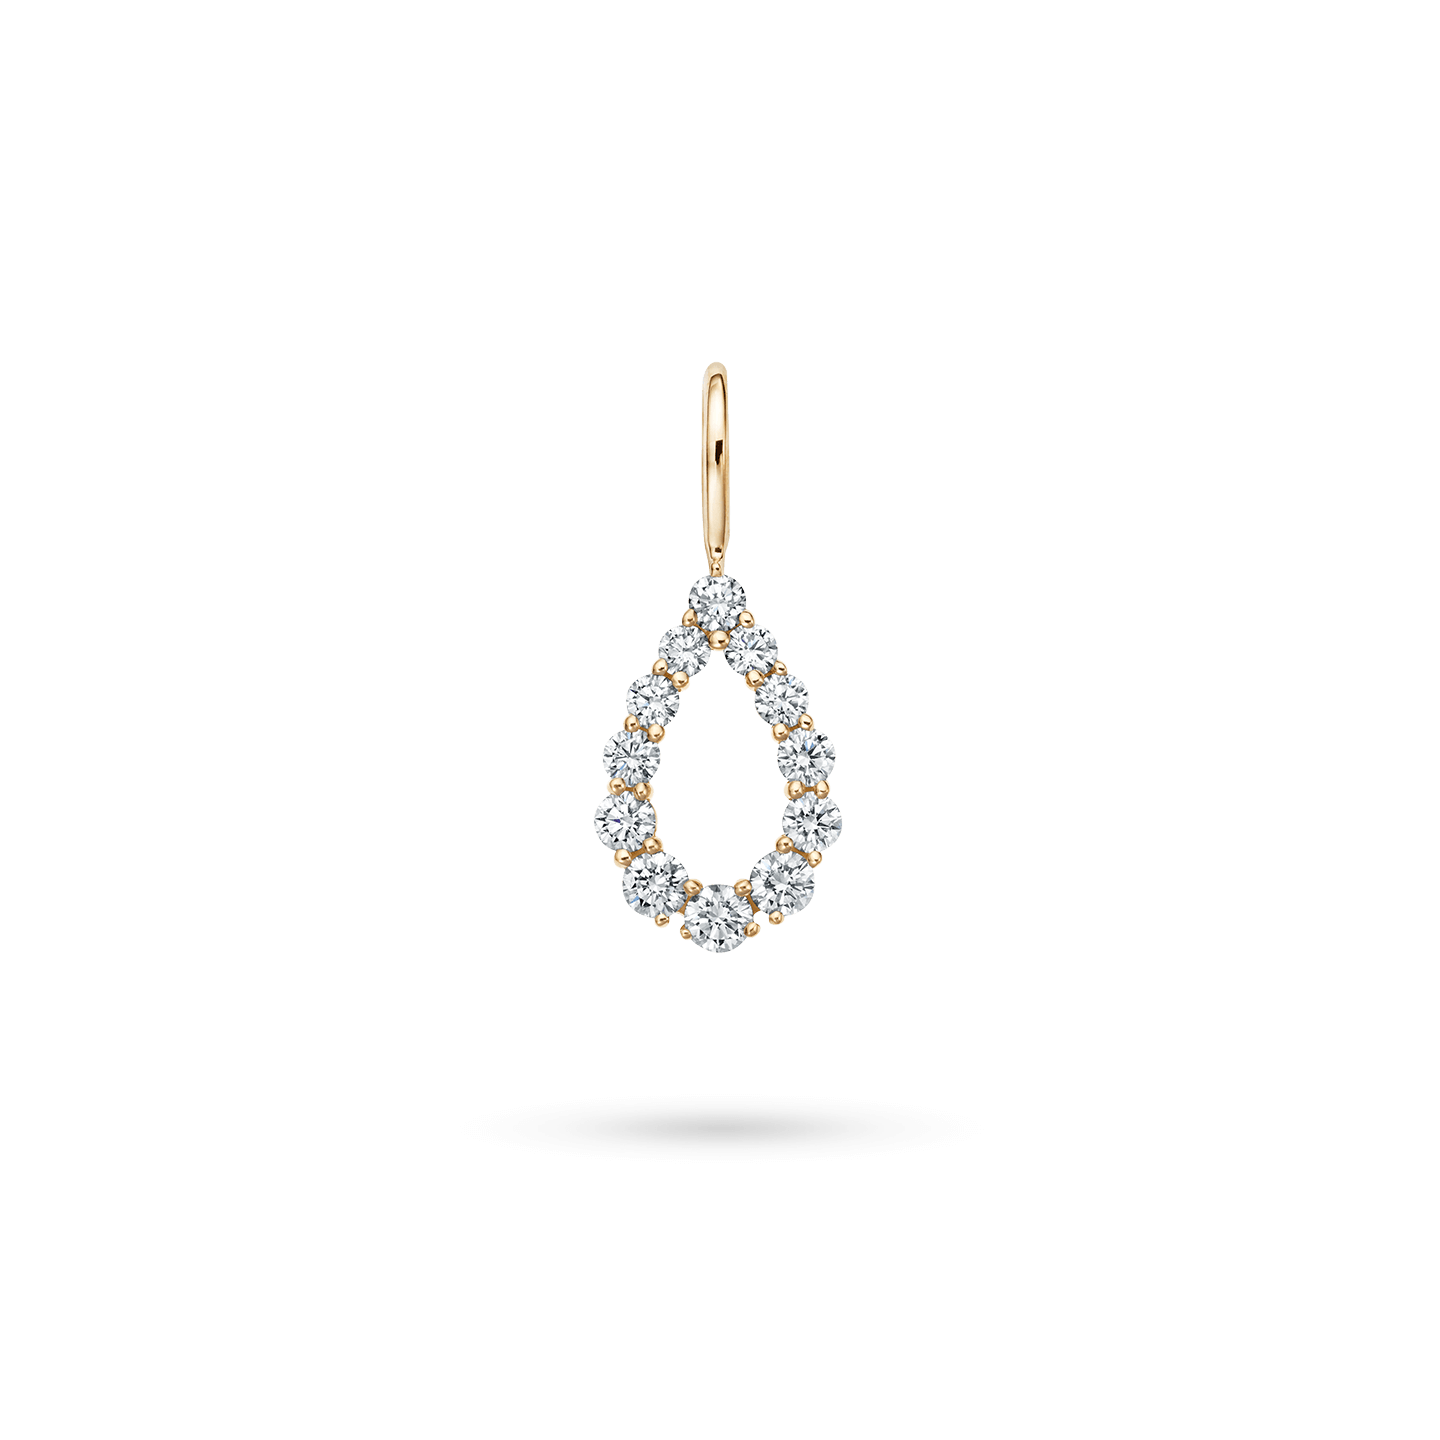 Diamond Loop Charm in Yellow Gold, Product Image 1